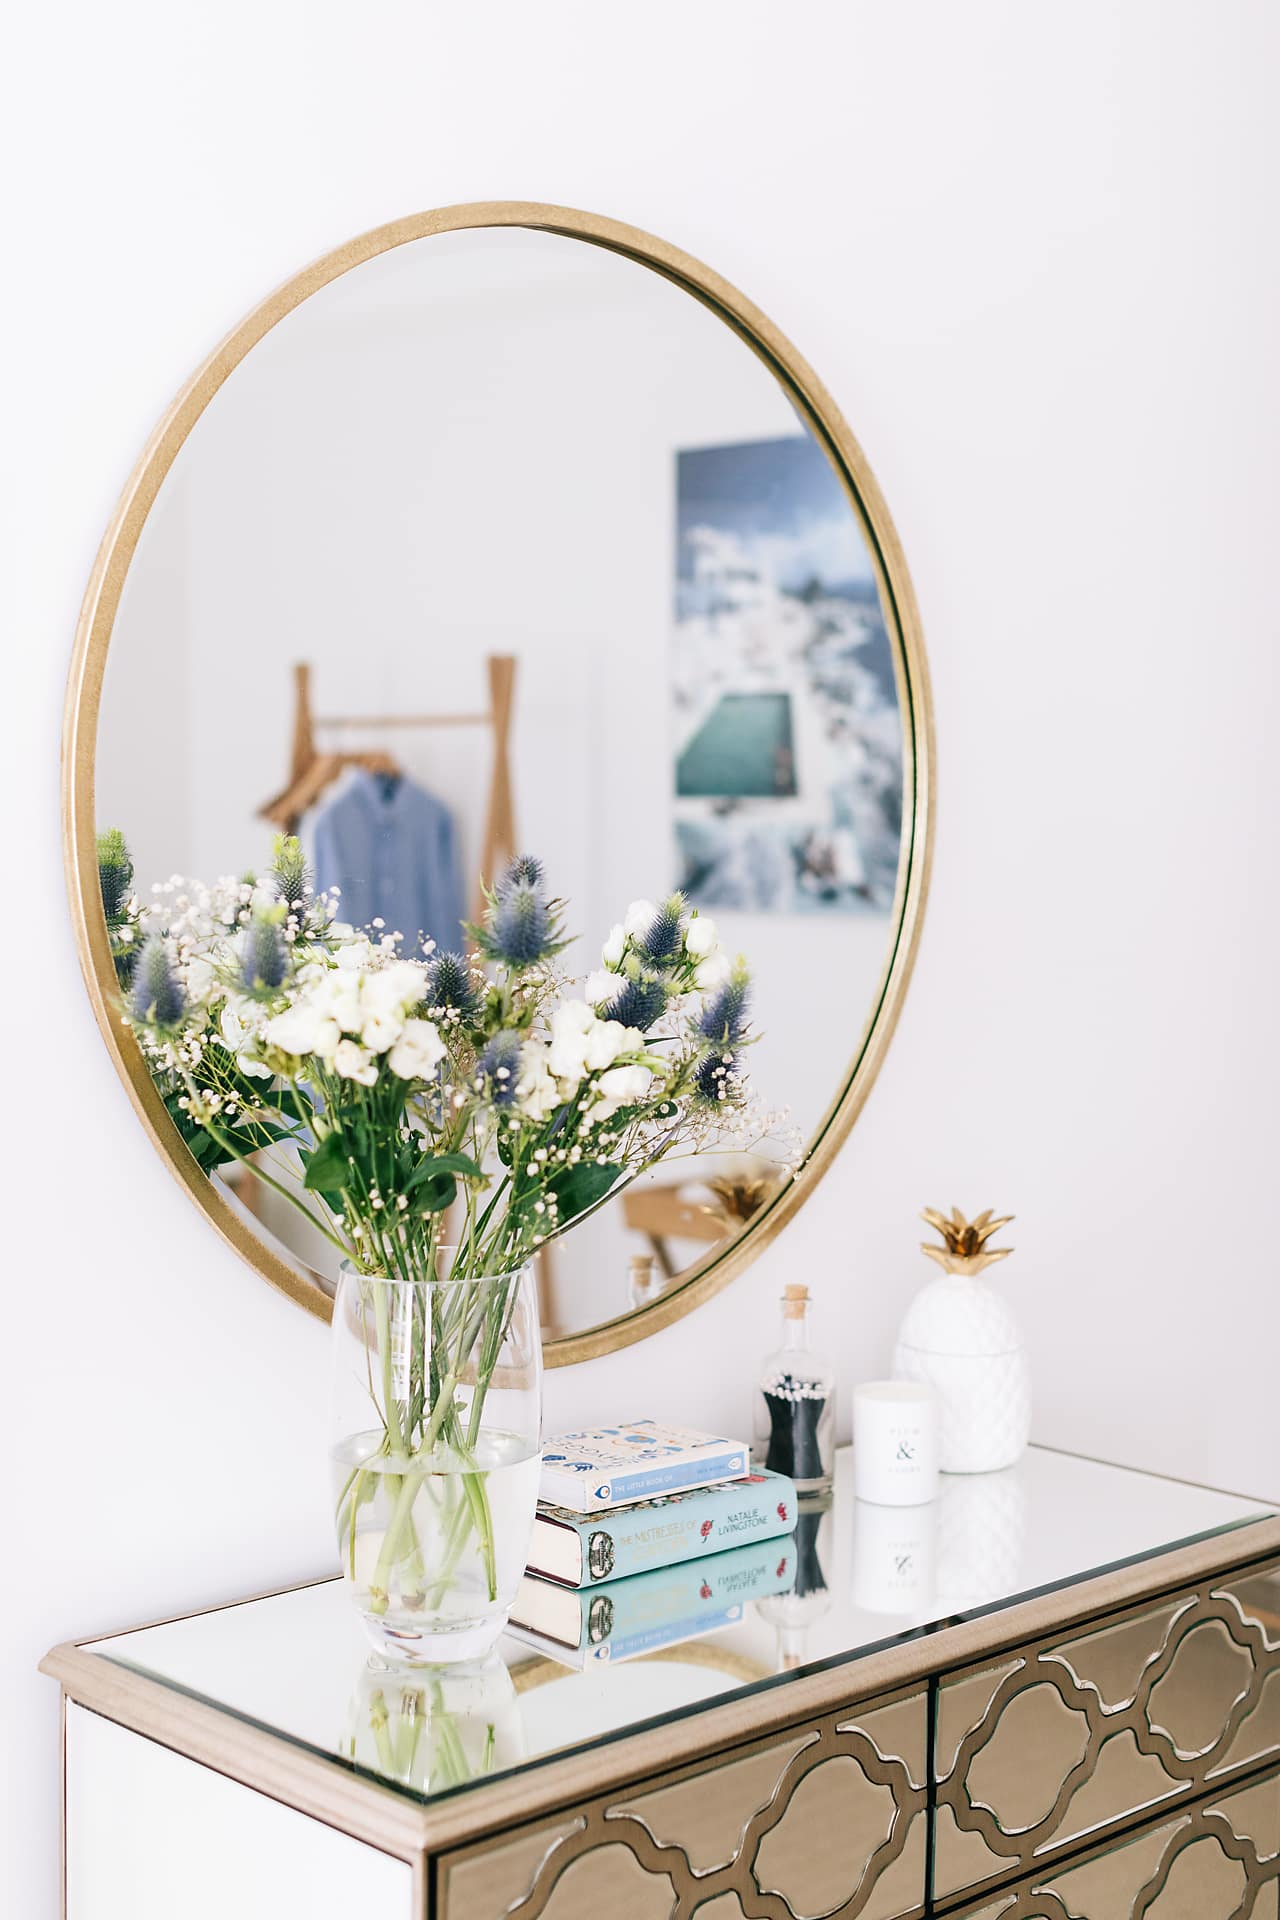 Laura Butler-Madden's Guest Bedroom Update